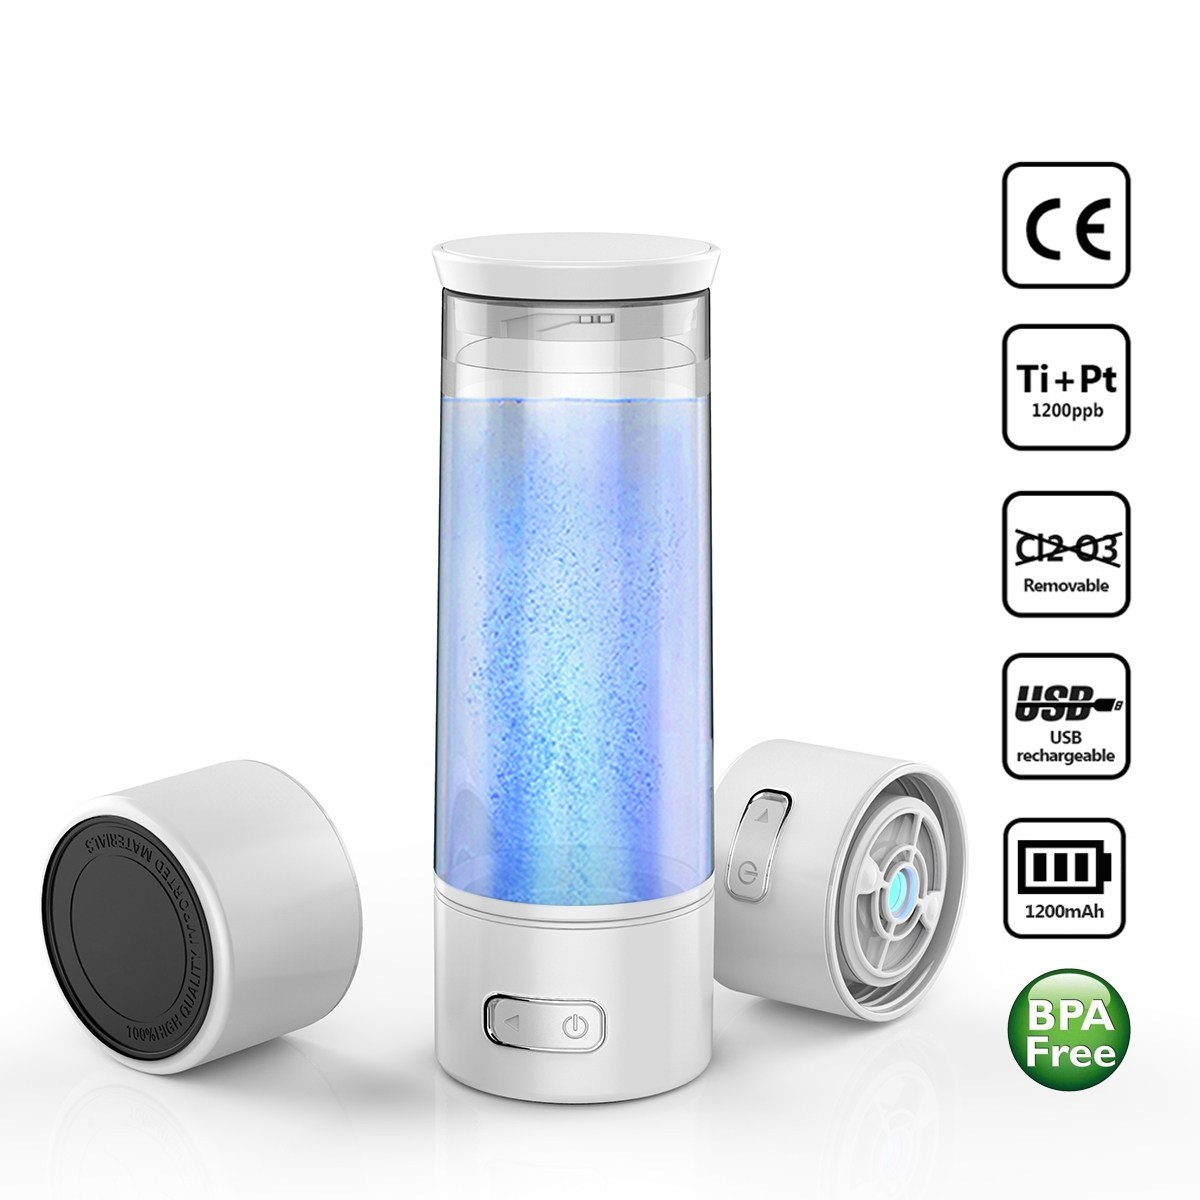 USB Rechargable High-Rich Hydrogen Water Bottle Ionizer Maker Generator Hydrogen Oxygen Separation Alkaline Energy Cup Filter usb rechargeable intelligent hydrogen rich water bottles ionizer portable glass maker ionizer generator 350ml super antioxidants